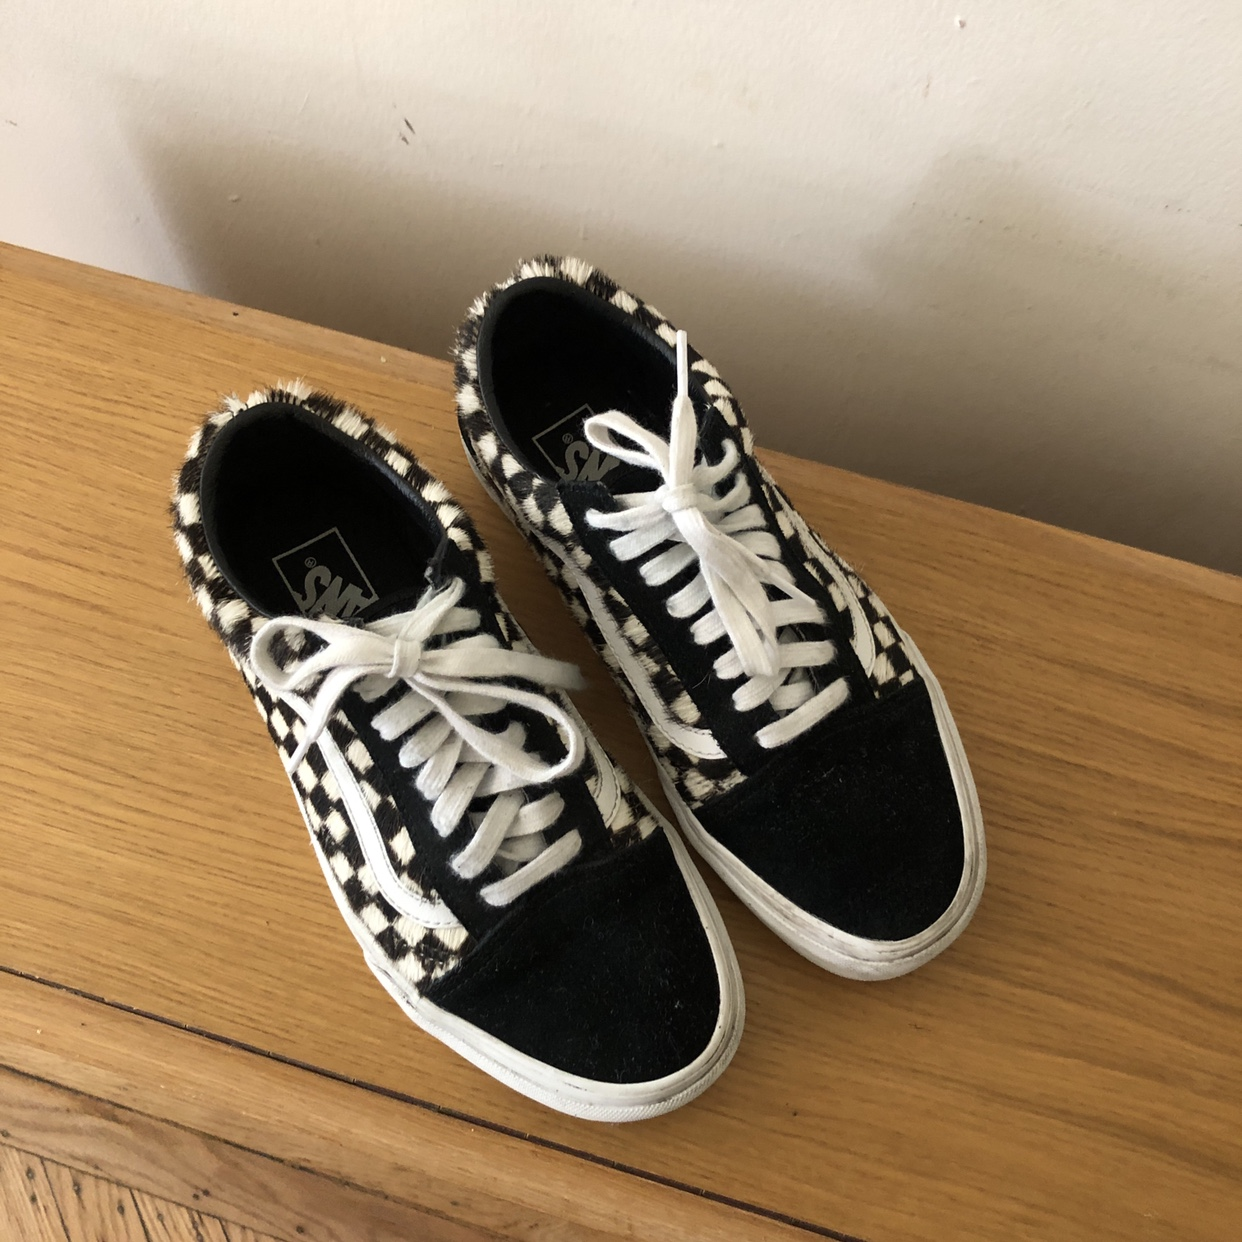 VANS X MADEWELL old skool calf hair check sneakers Depop